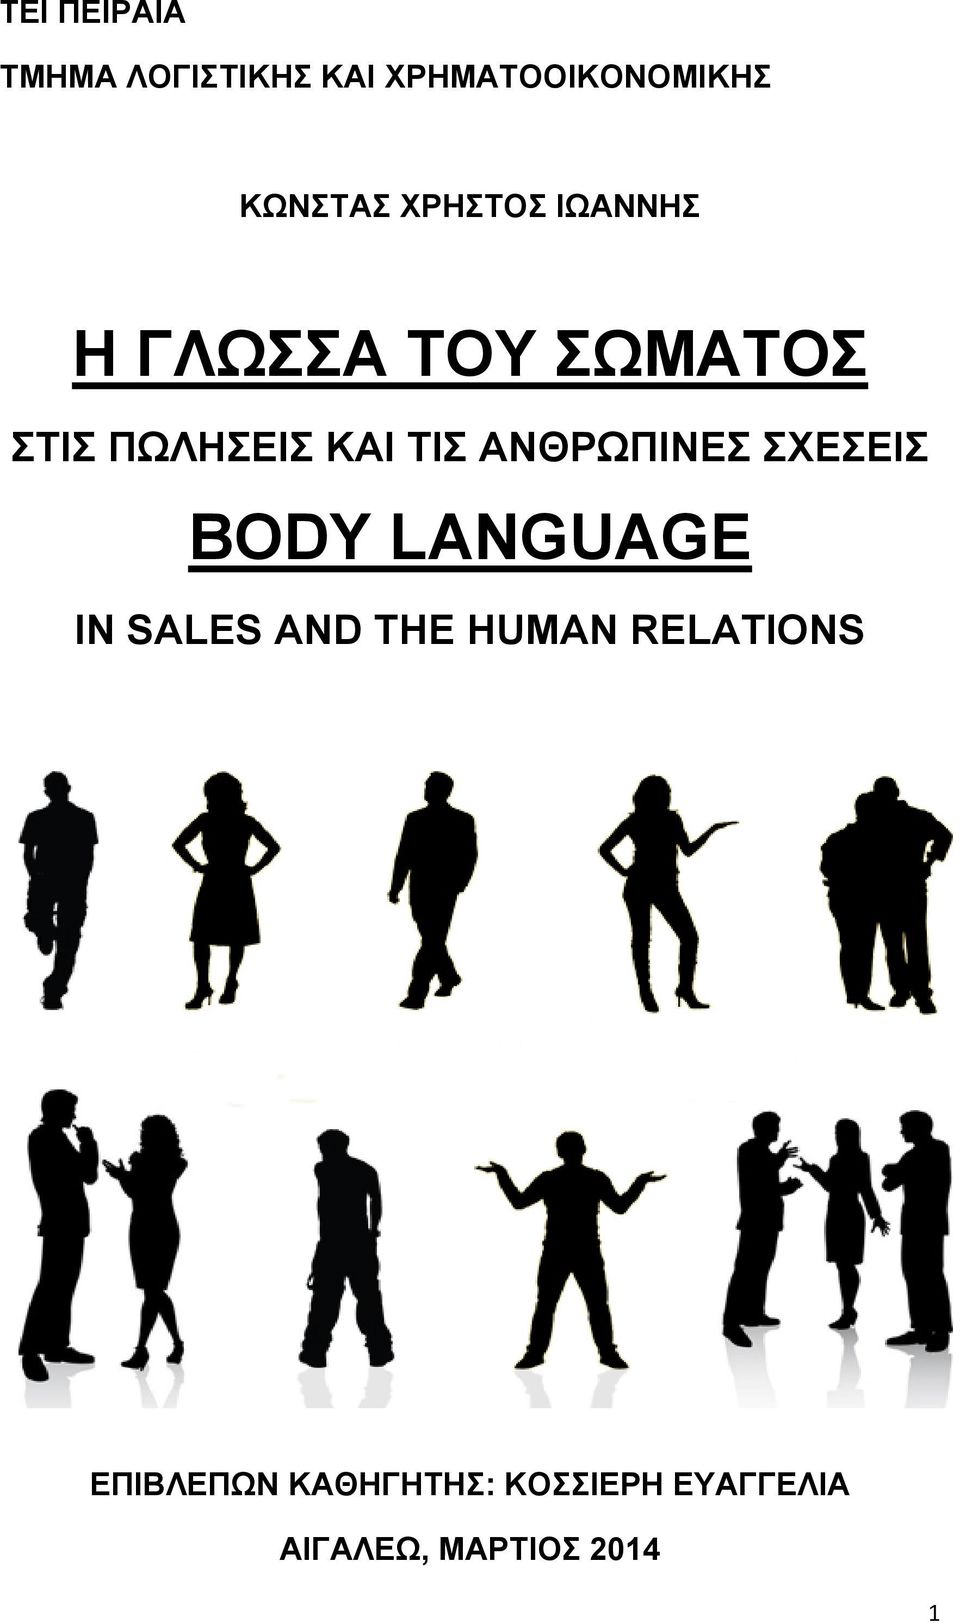 ΑΝΘΡΩΠΙΝΕΣ ΣΧΕΣΕΙΣ BODY LANGUAGE IN SALES AND THE HUMAN